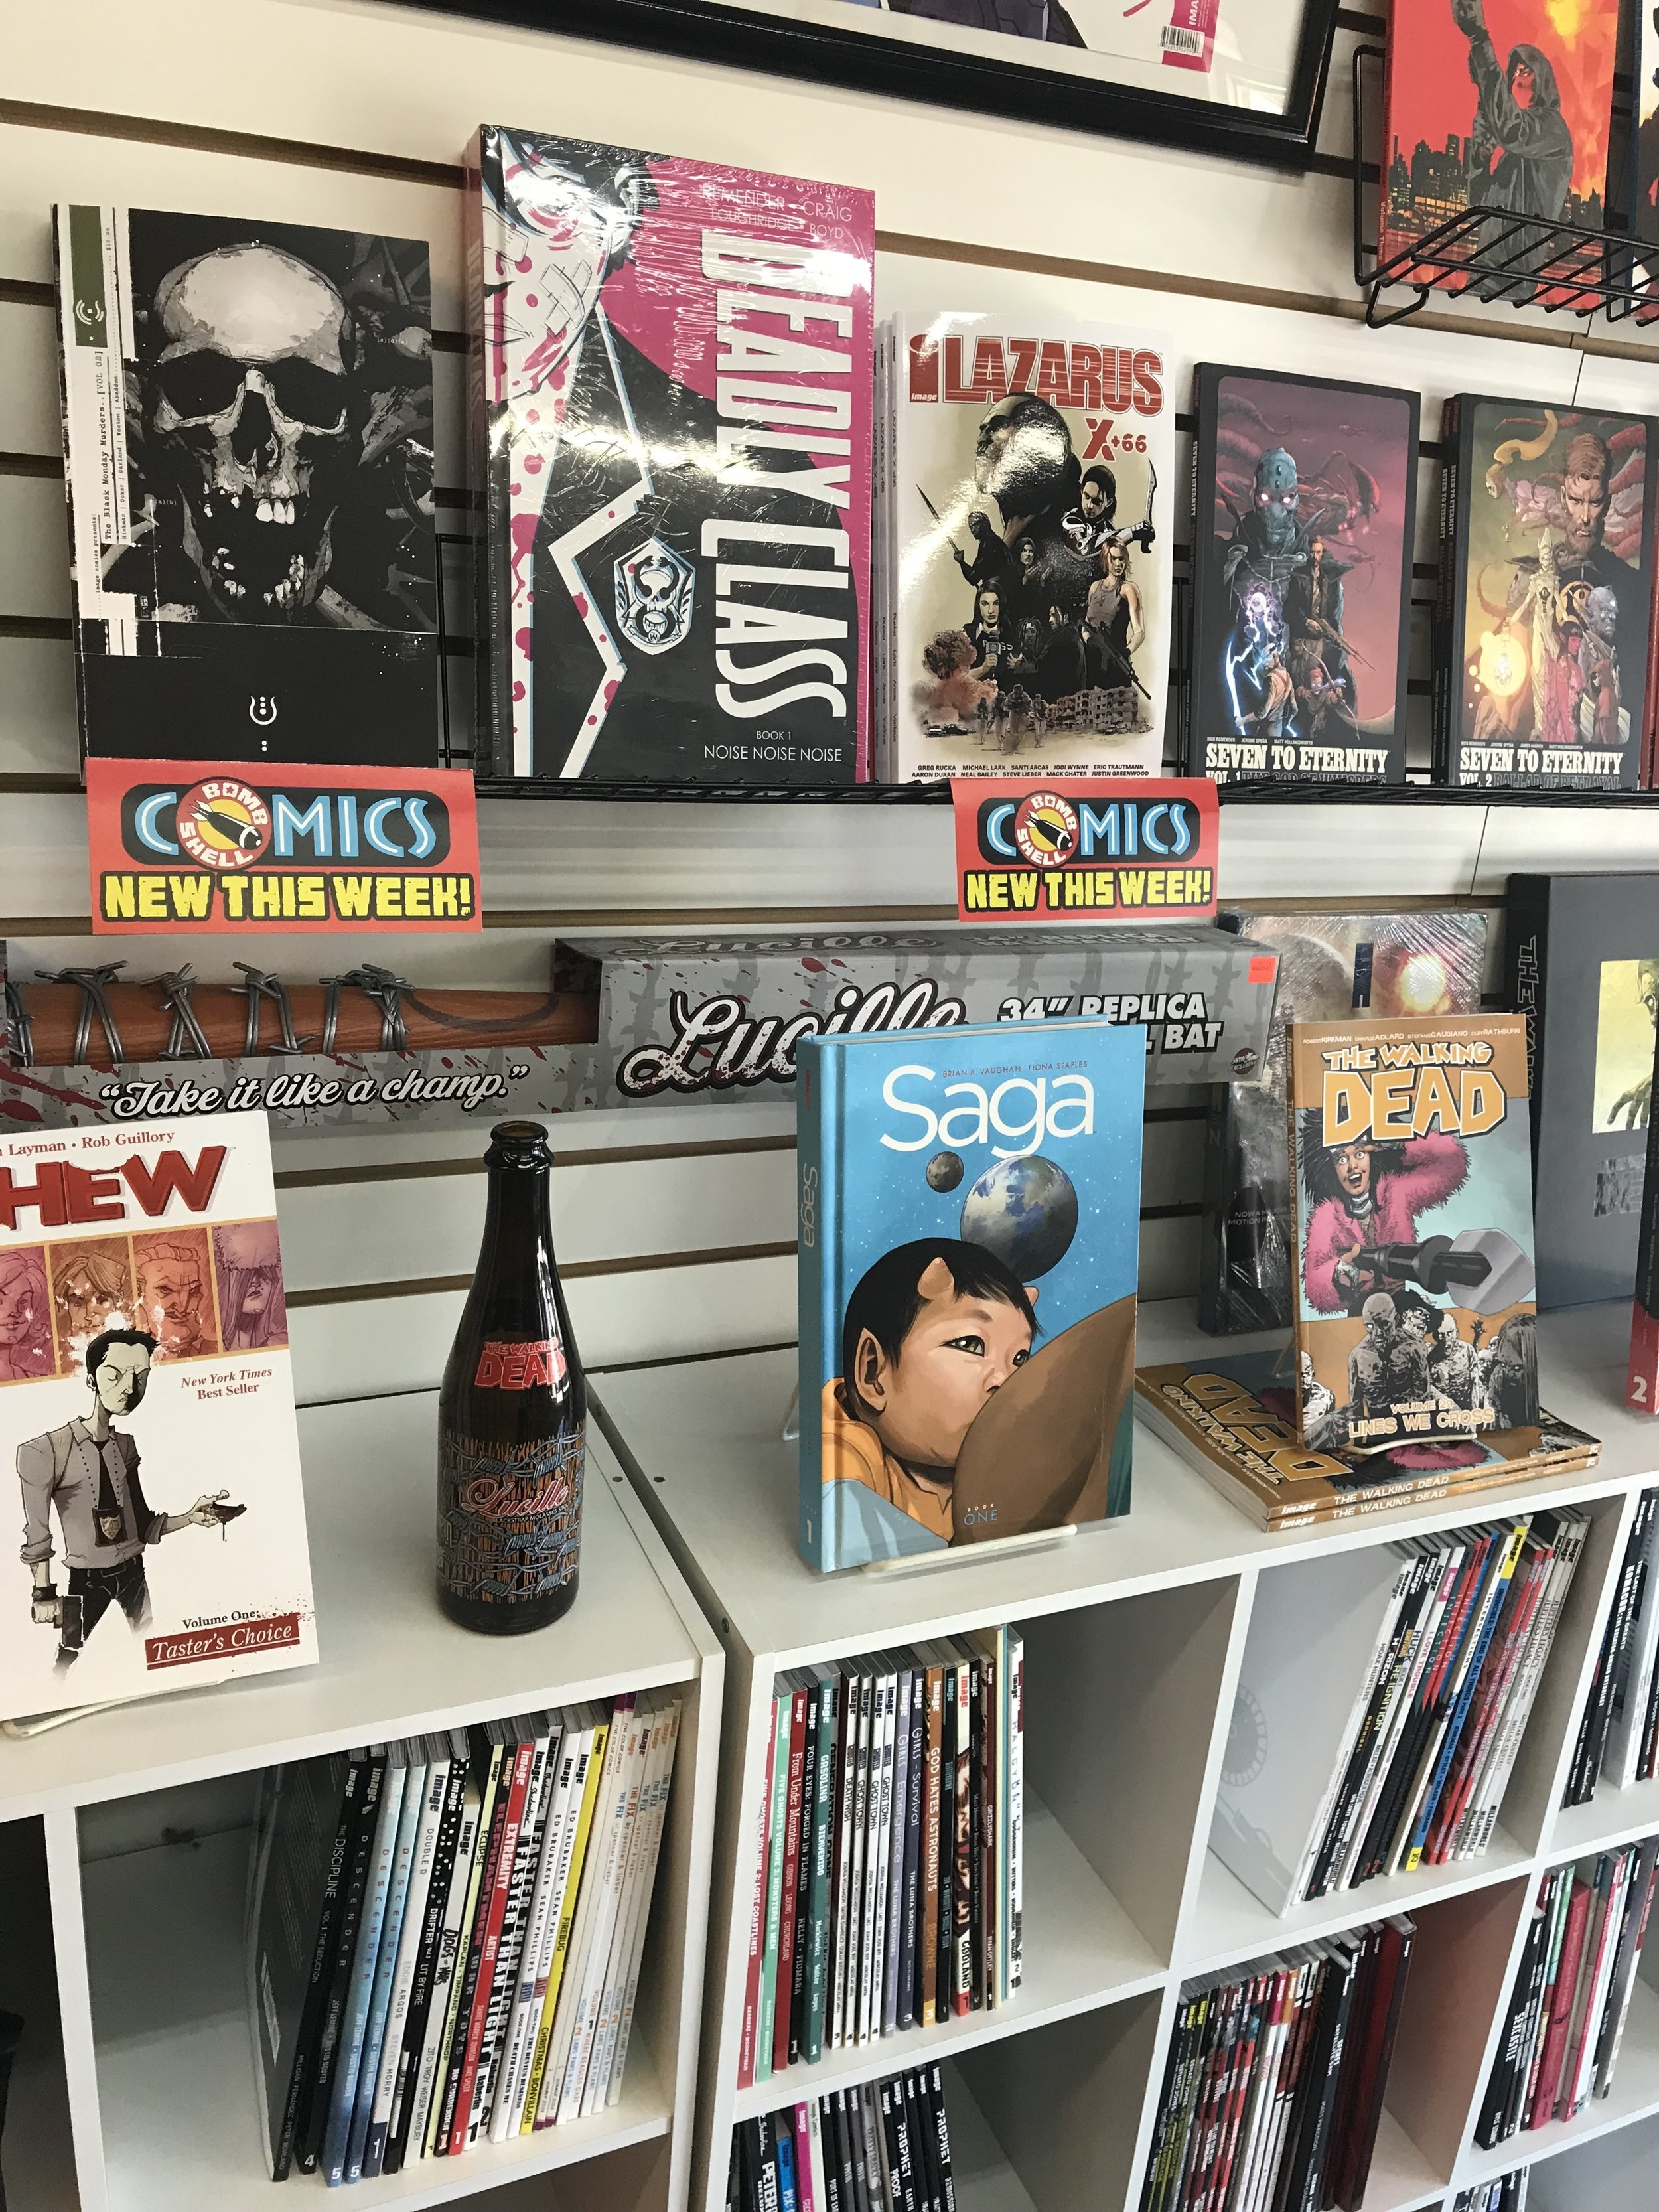 Look at that sweet Image shelf!